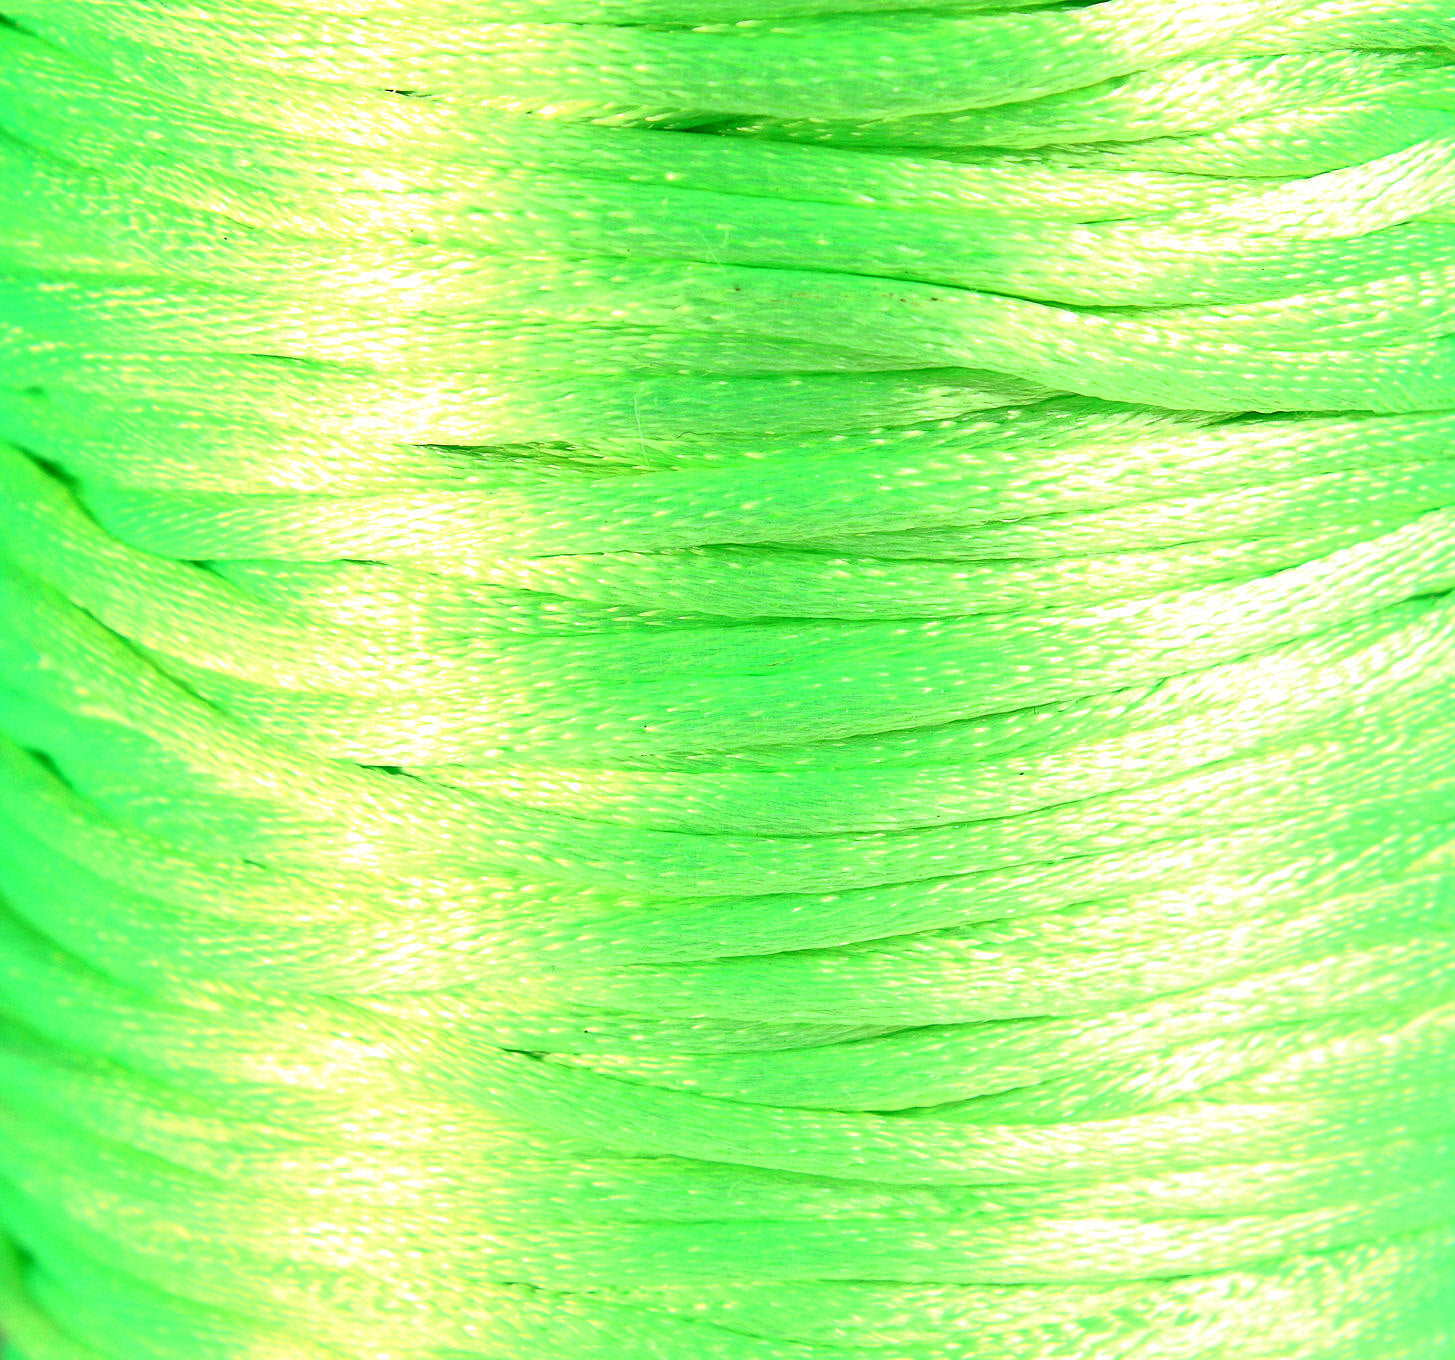 2mm Neon green nylon thread cord - Knotting cord - Thick nylon thread - Nylon satin cord - Macrame cord - 10 feet (R032)